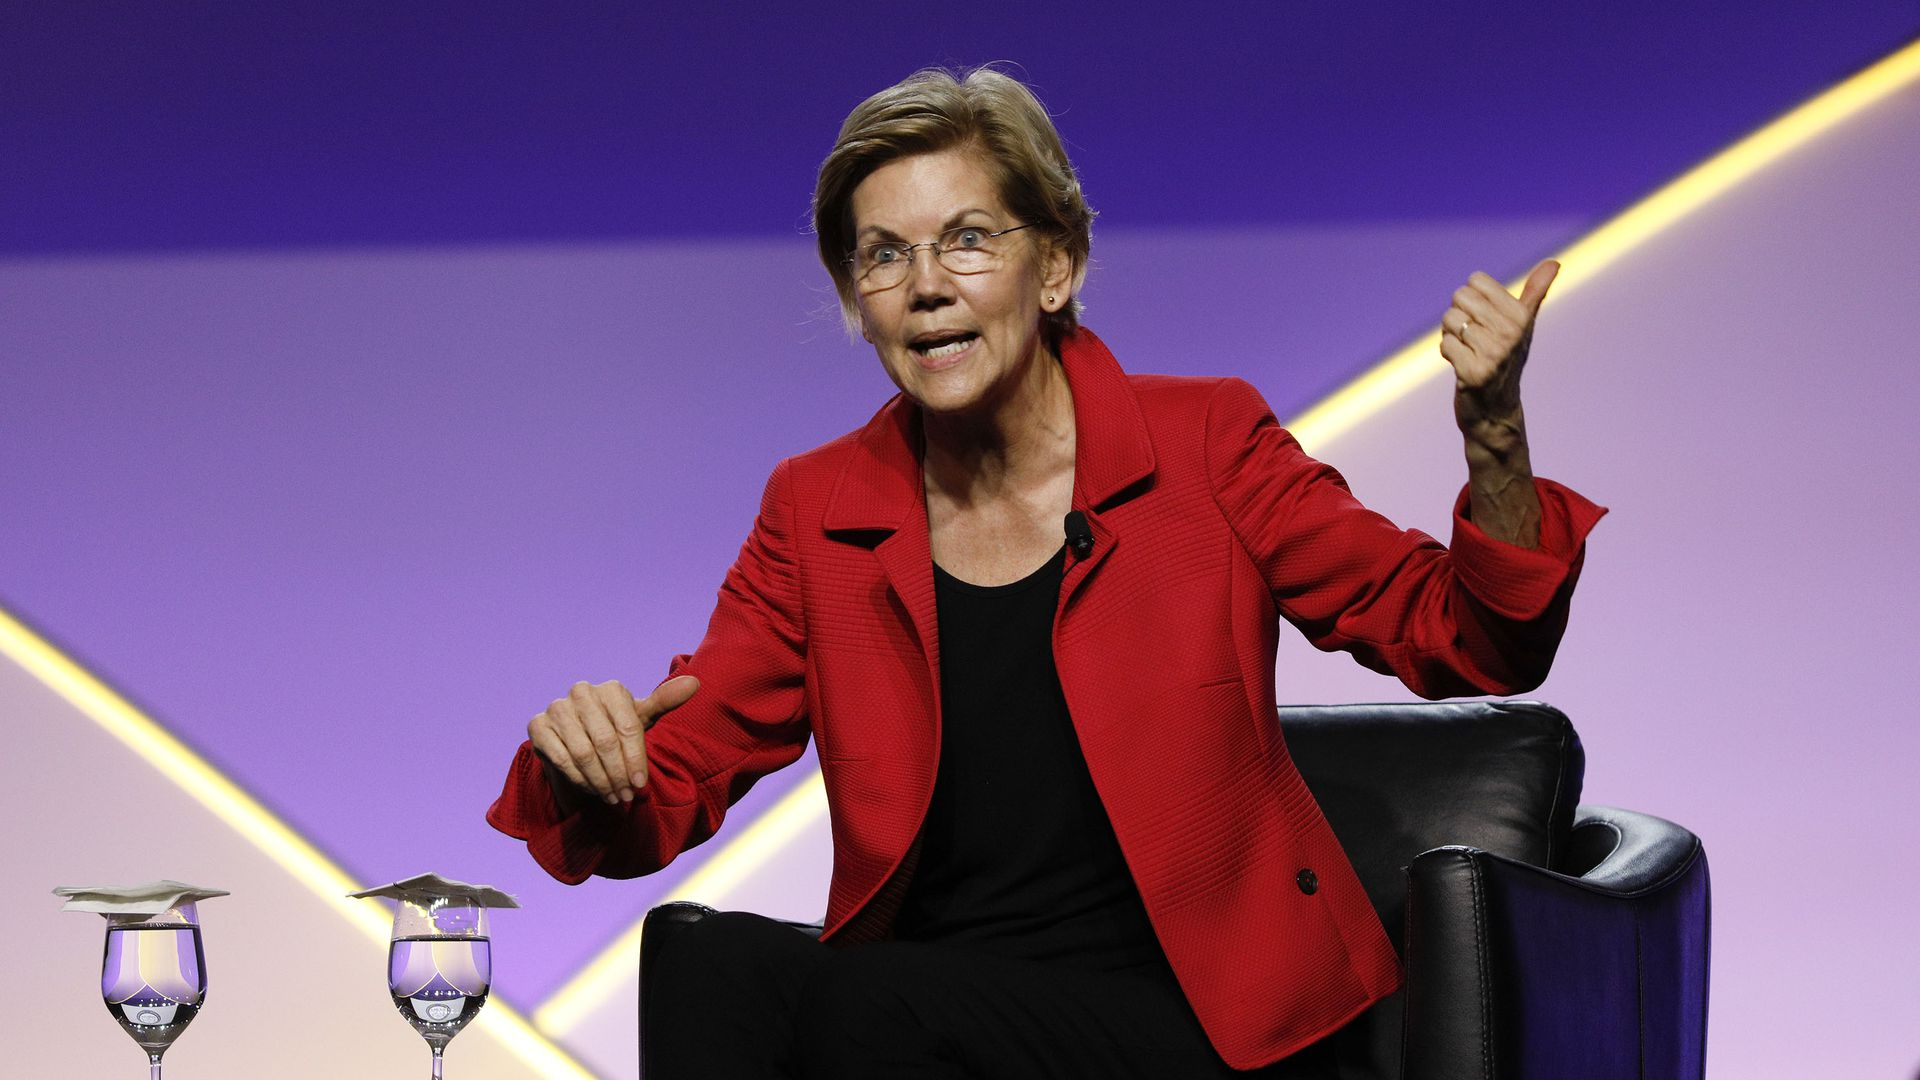 Democratic presidential candidate U.S. Sen. Elizabeth Warren (D-MA) participates in a Presidential Candidates Forum at the NAACP 110th National Convention on July 24, 2019 in Detroit, Michigan.